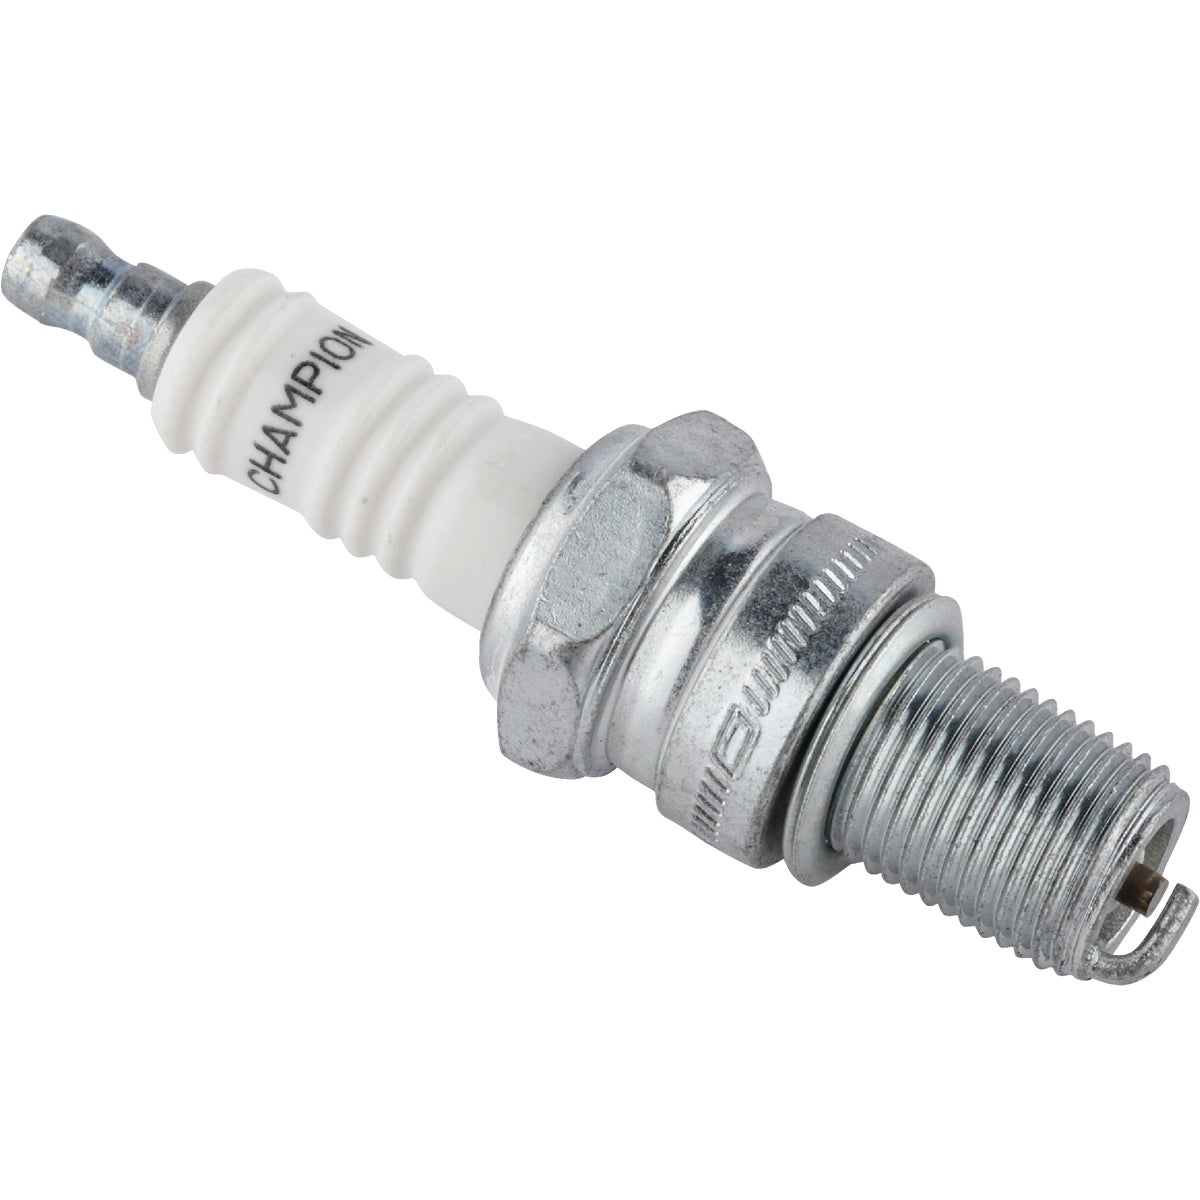 N2C SM ENGINE SPARK PLUG - 805C by Federal Mogul